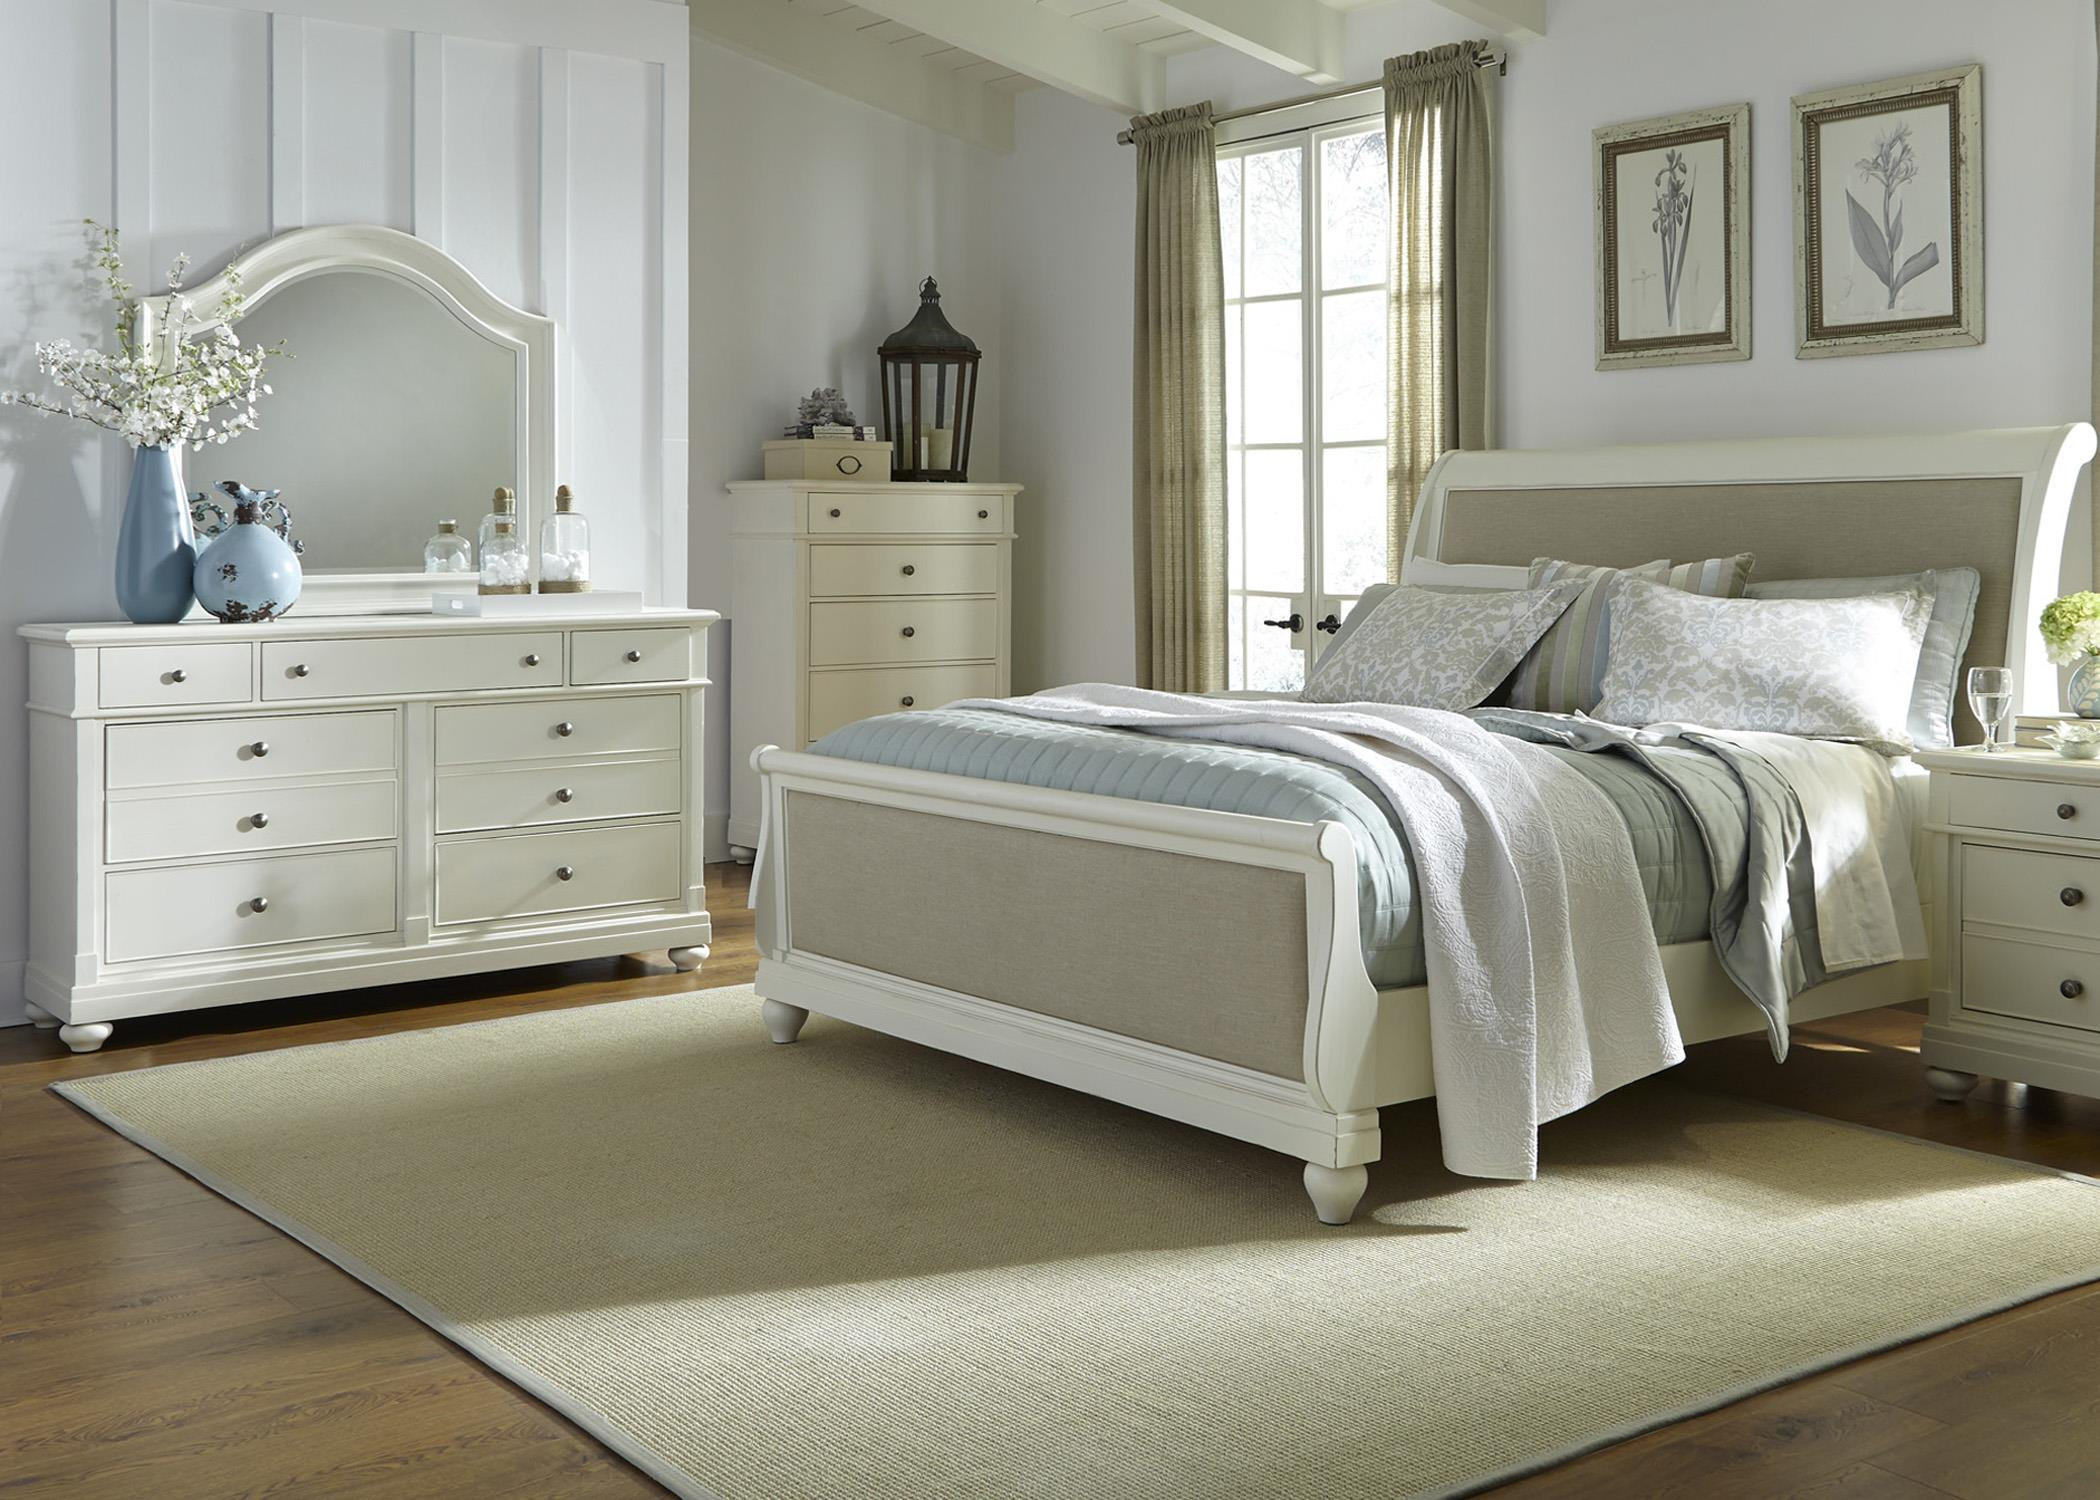 Liberty Furniture Harbor View Queen Bedroom Group - Item Number: 631-BR-QSLDMC